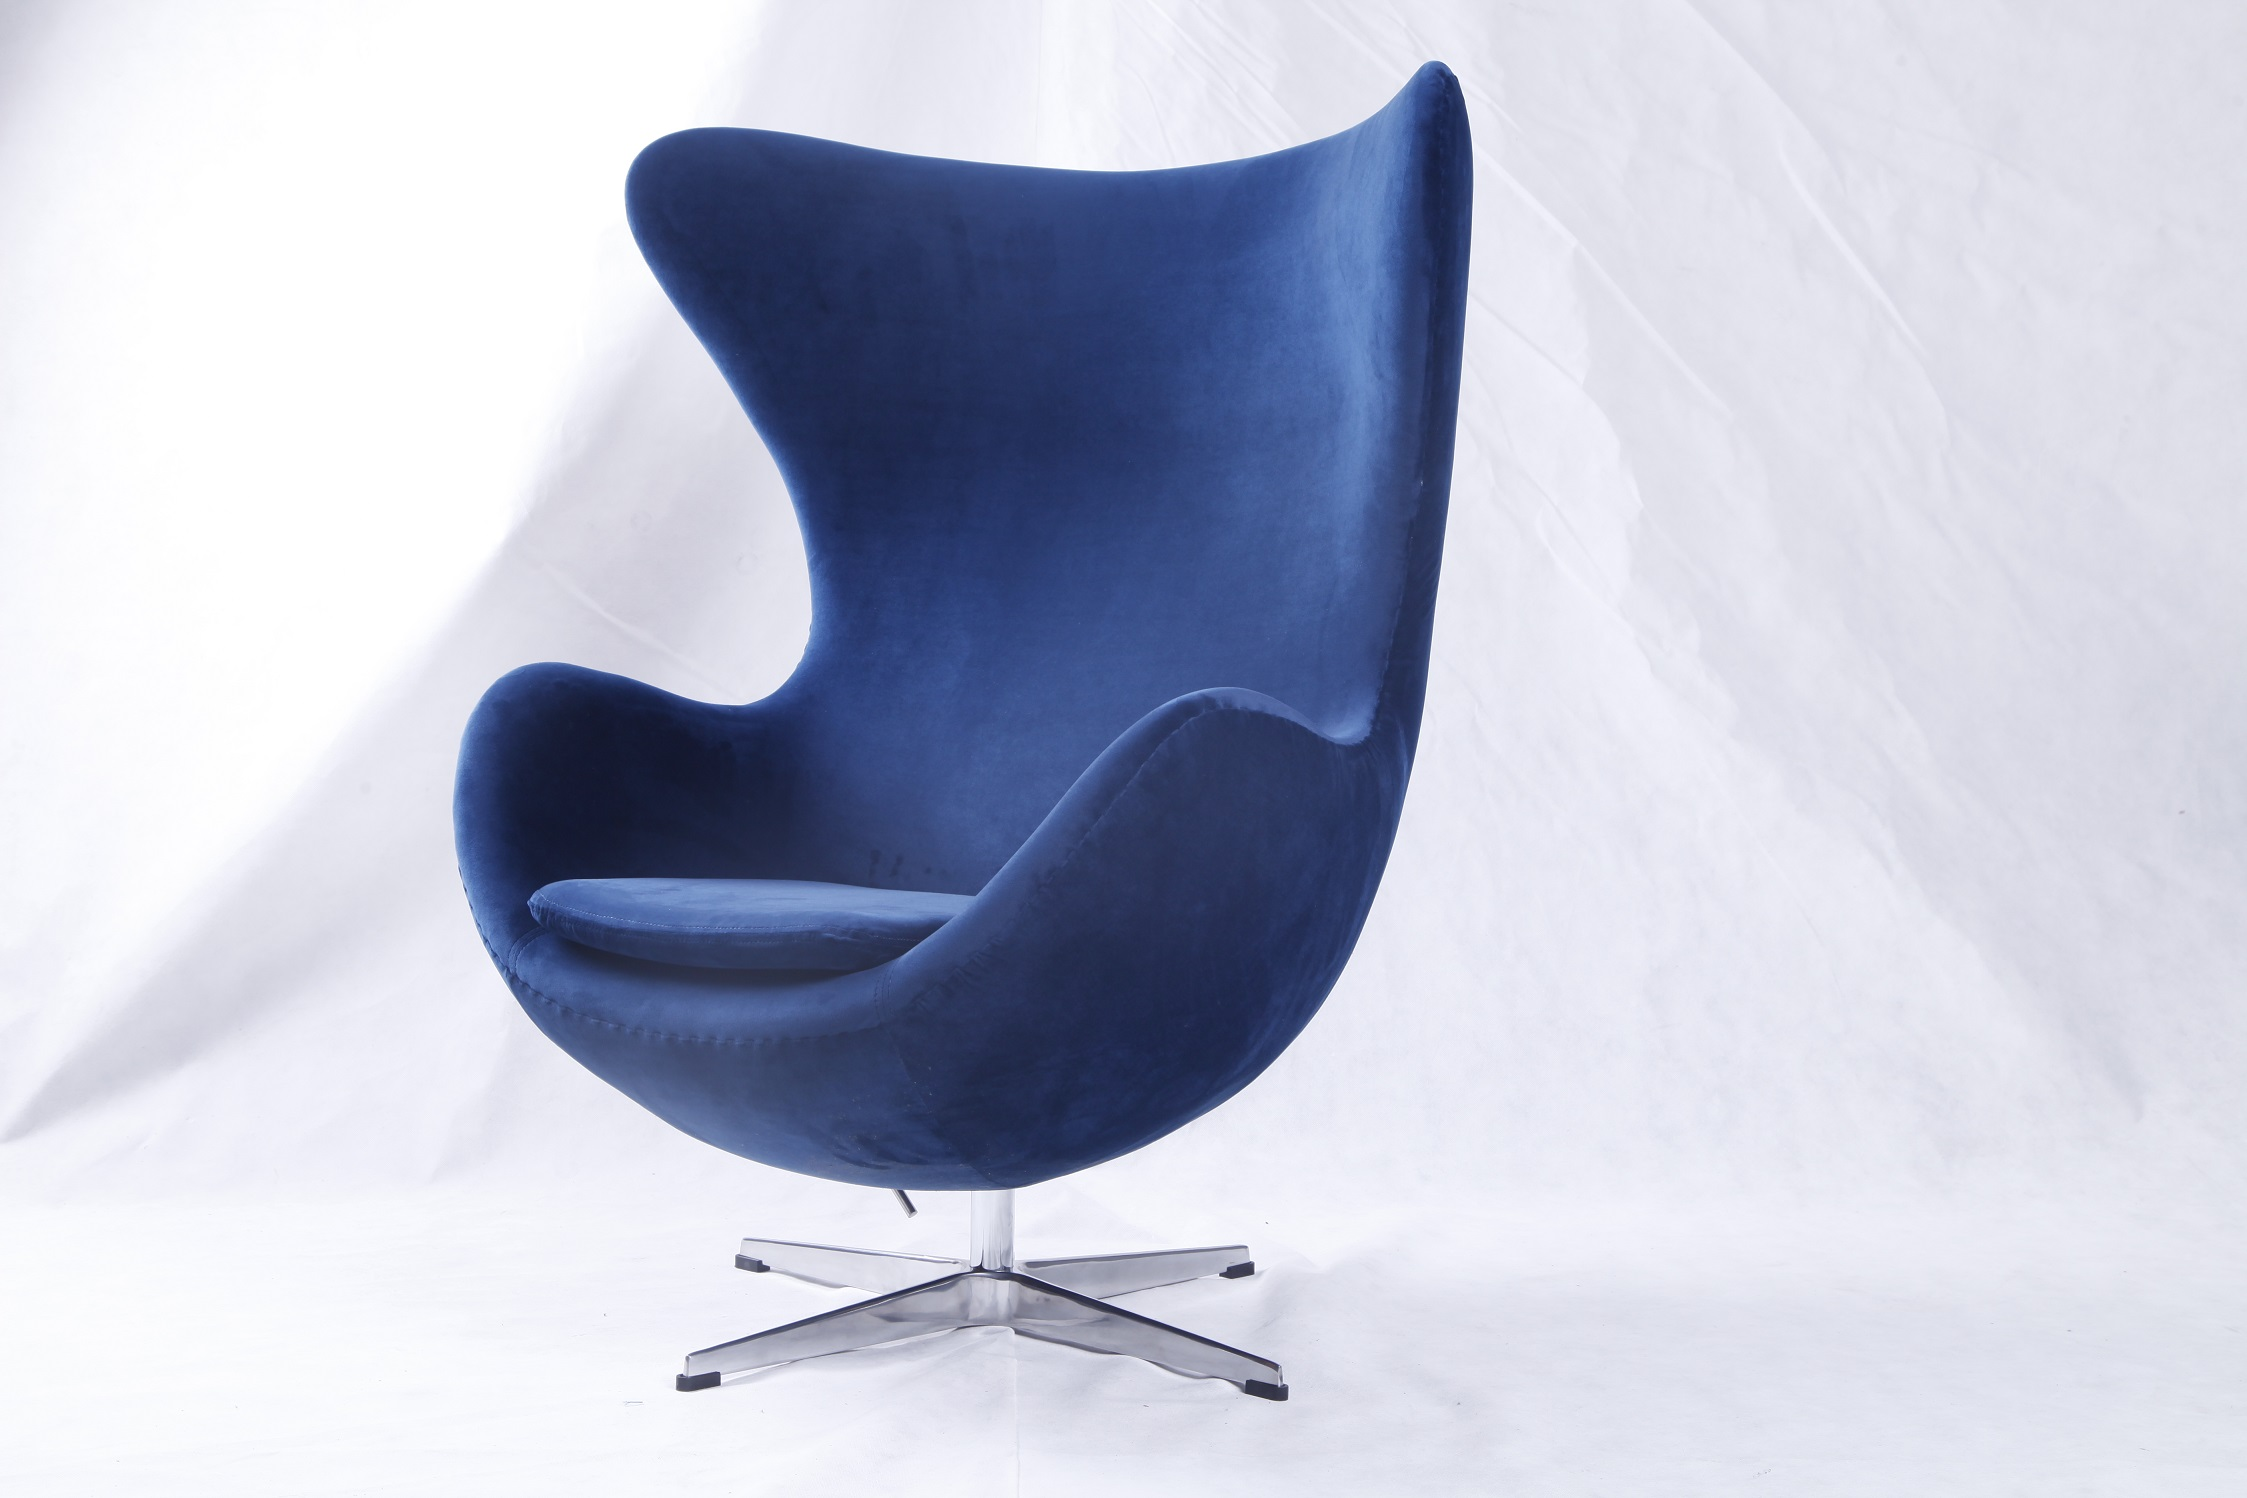 arne jacobsen egg chair replica blue velvet